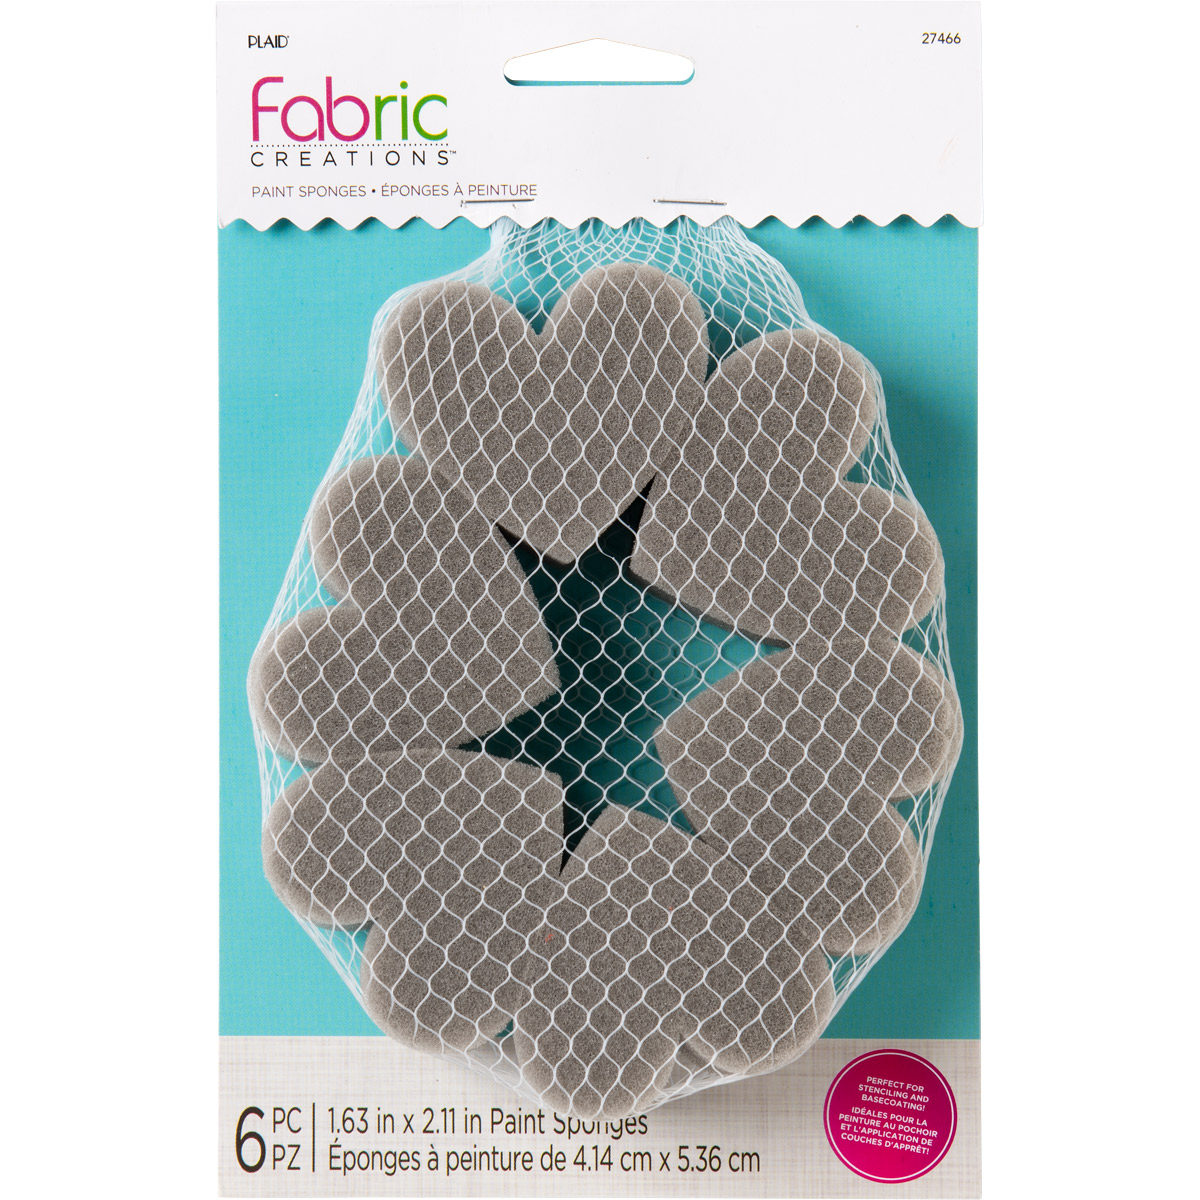 Fabric Creations™ Tools - Heart Shaped Sponge Applicators, 6 pc. - 27466